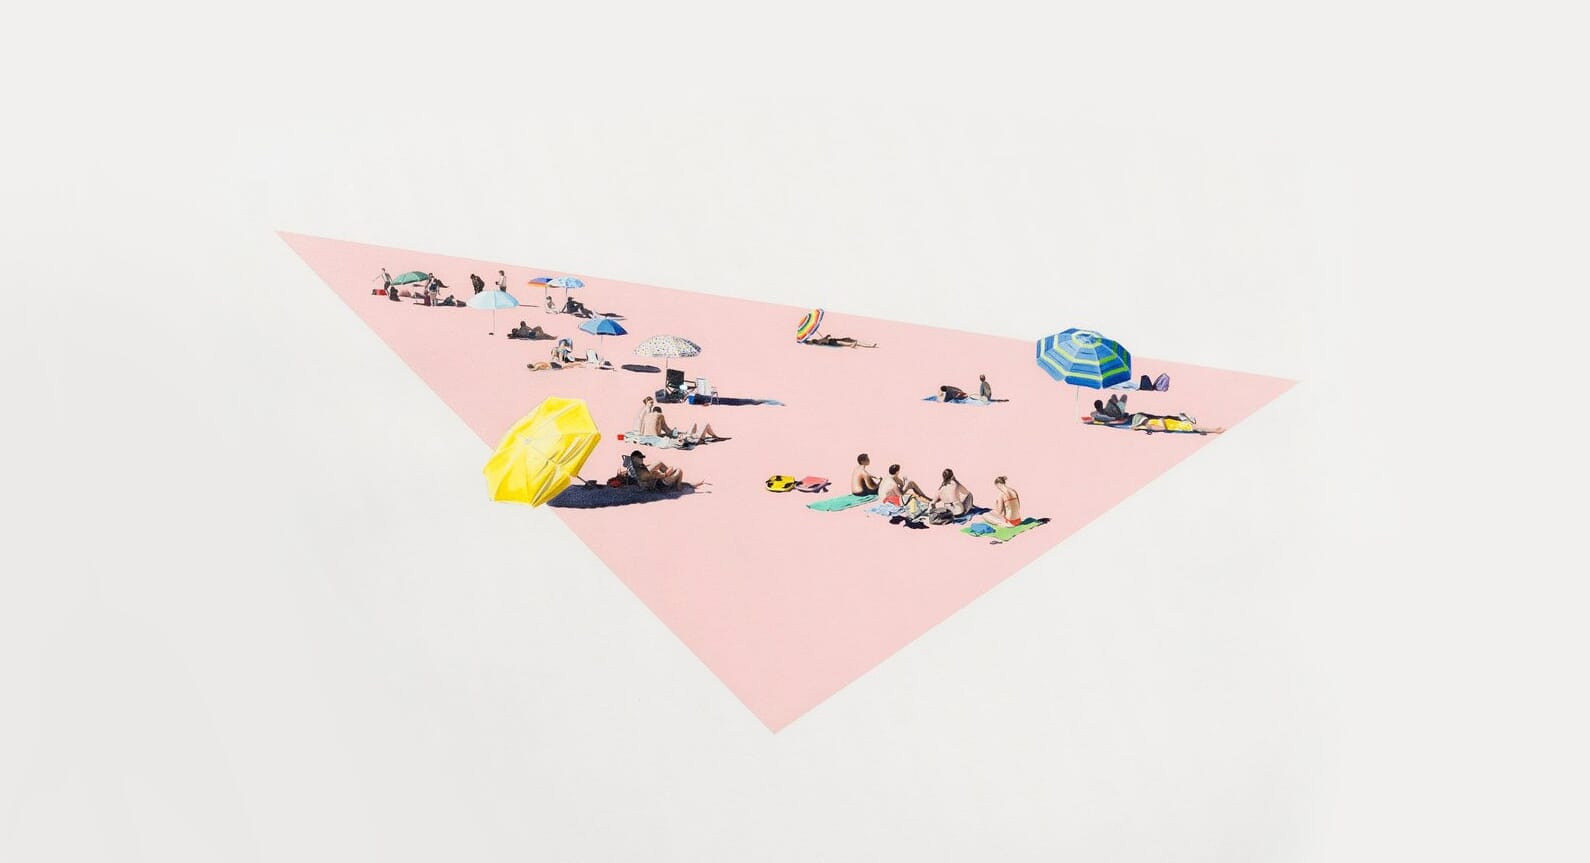 Life's A Beach: Stunning Seaside Scenes by Kirsten Beets